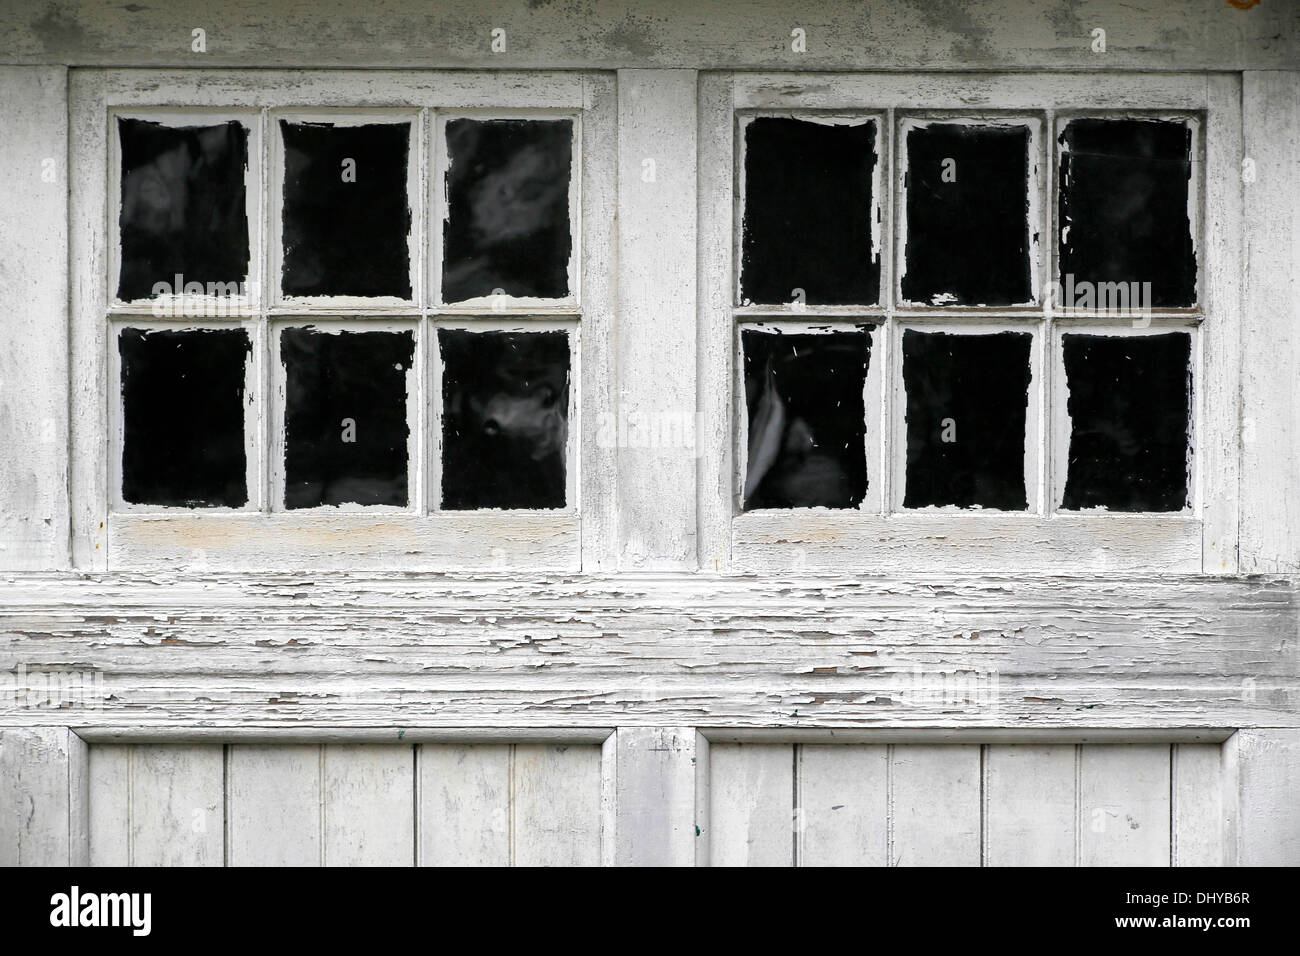 Weather beaten old garage doors, sloppily painted around the window panes. - Stock Image